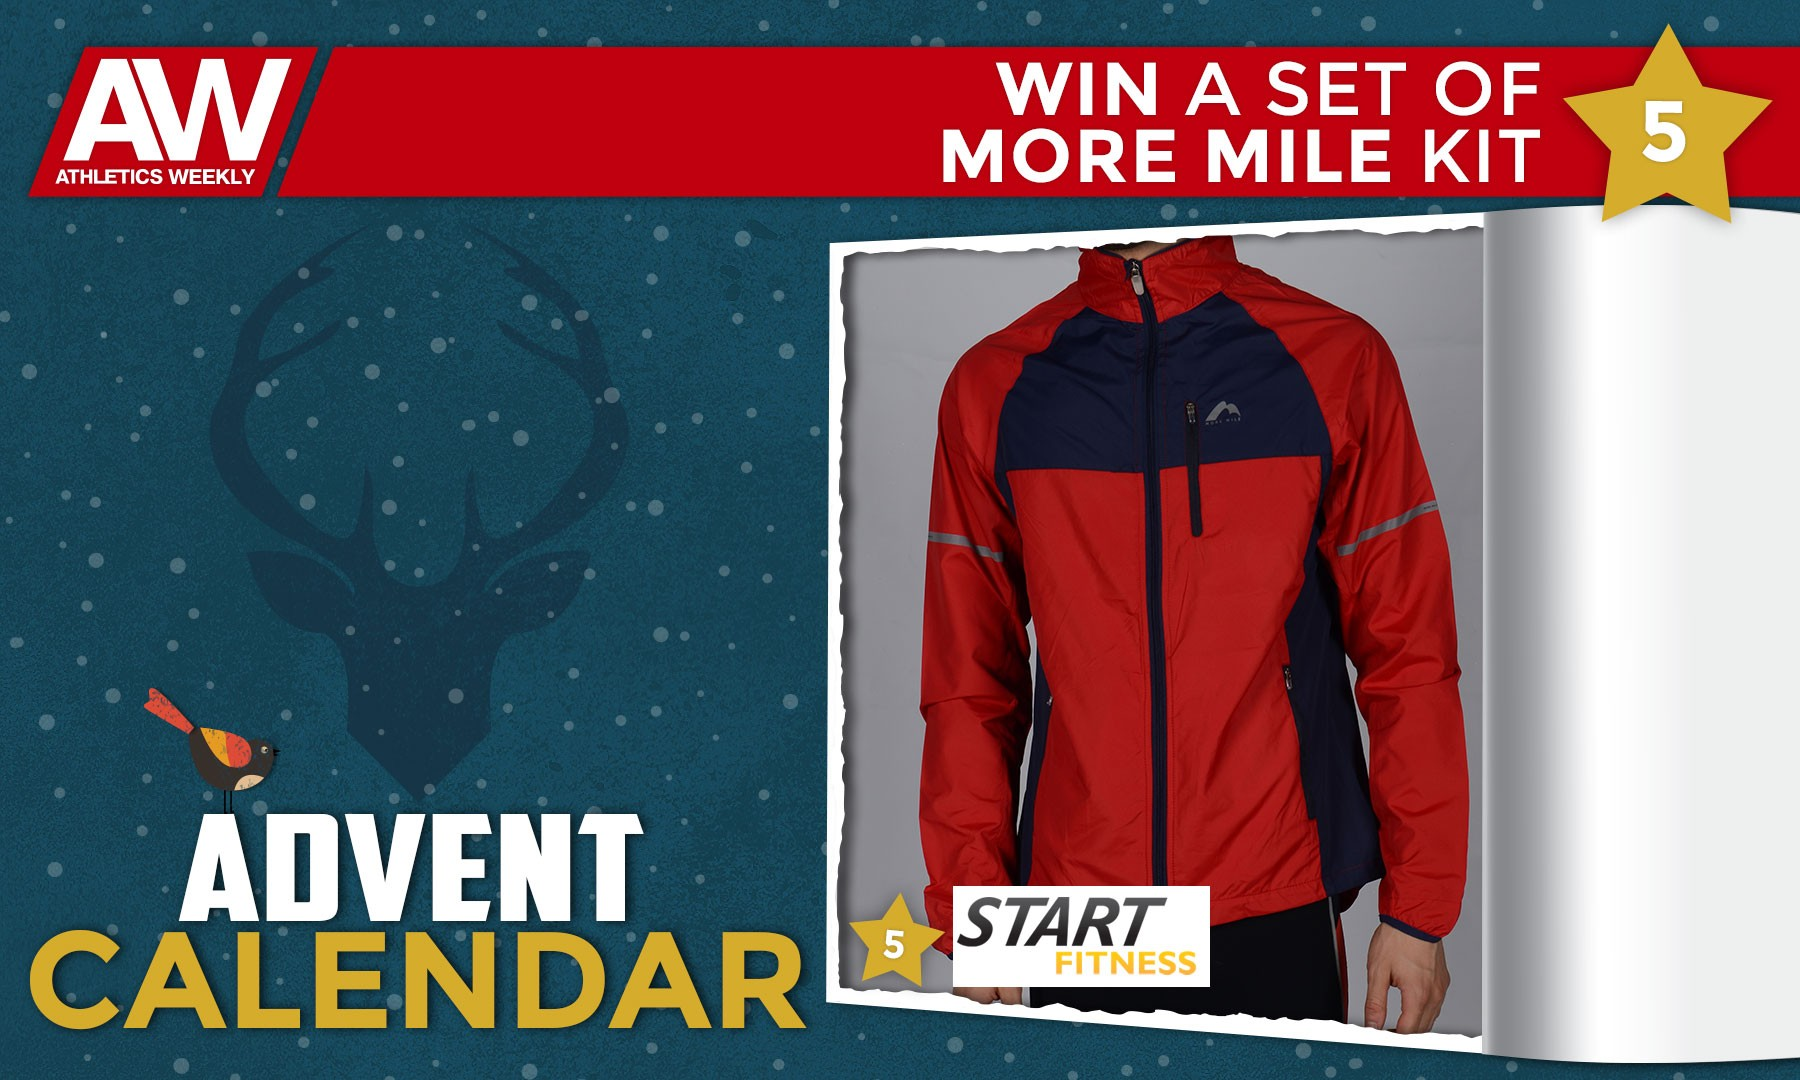 Win More Mile kit